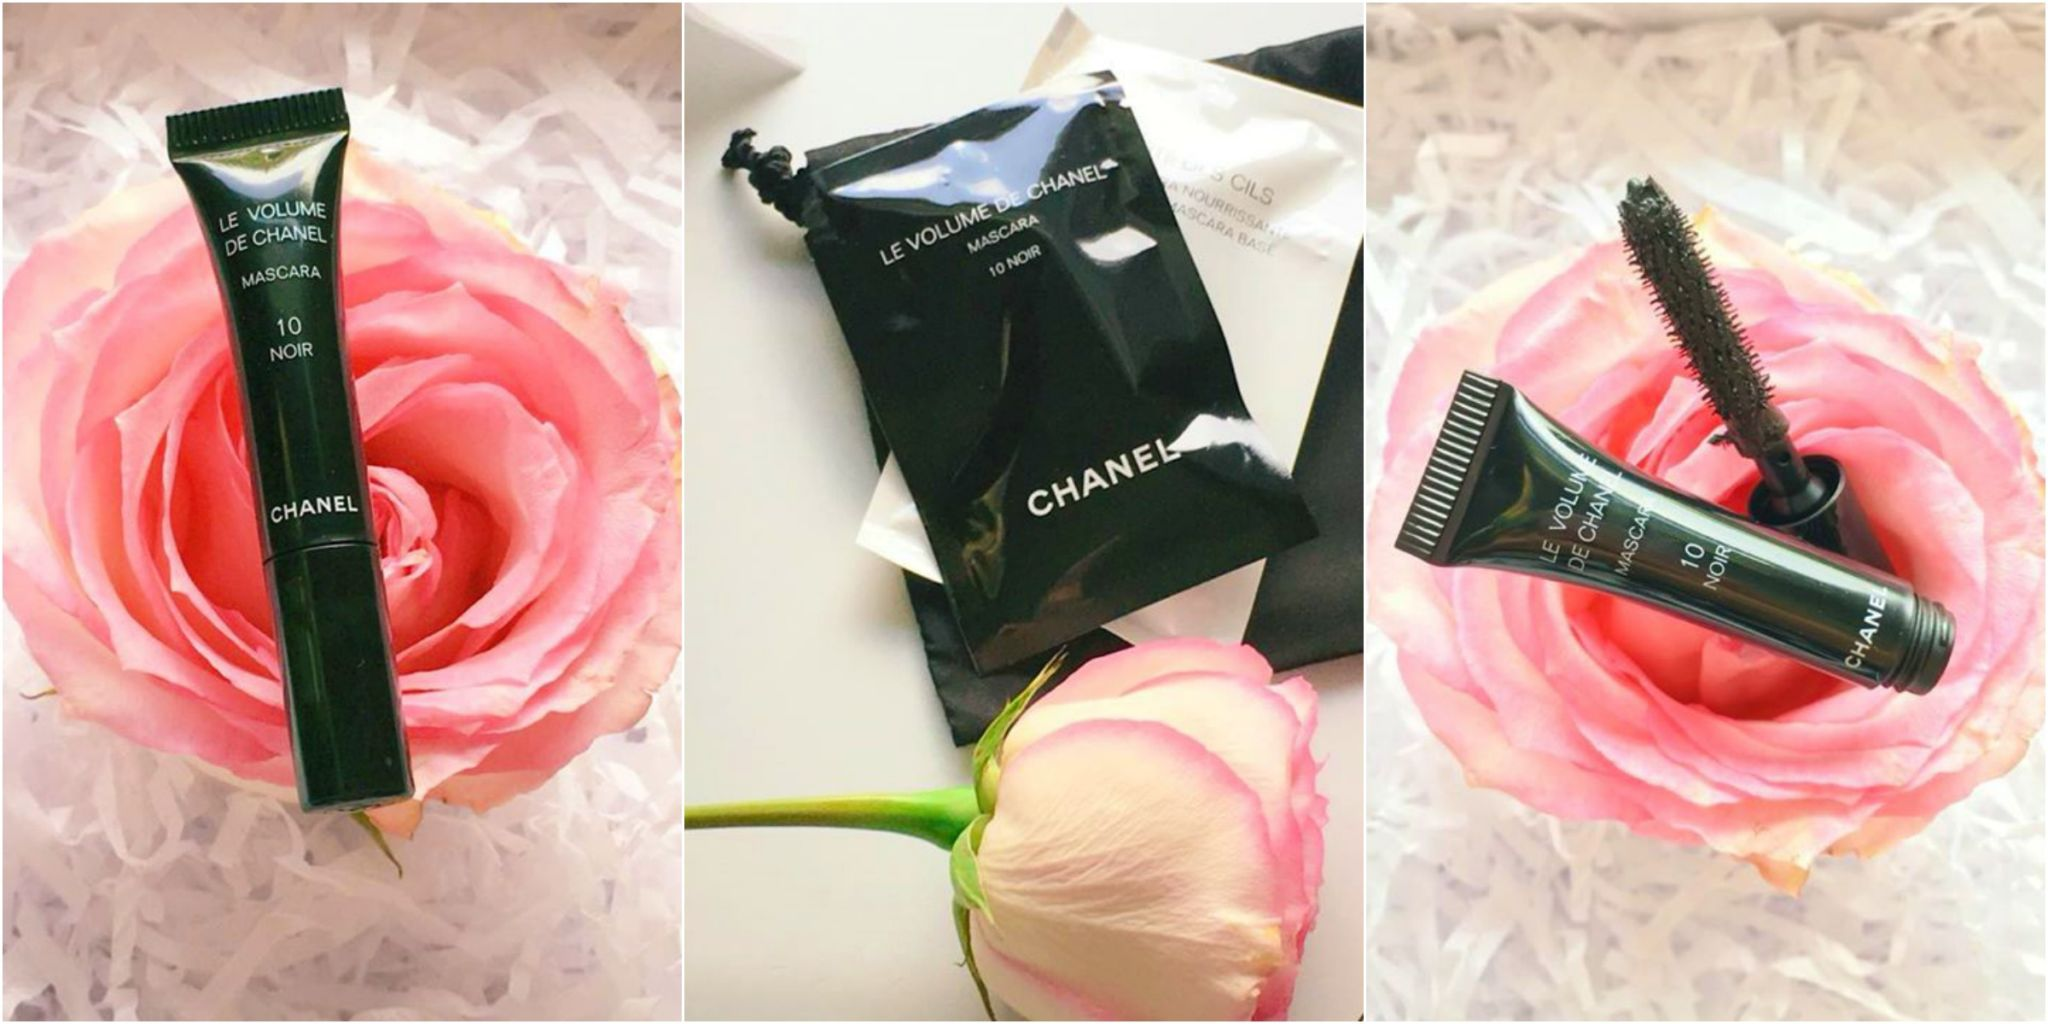 A sample mascara from Chanel